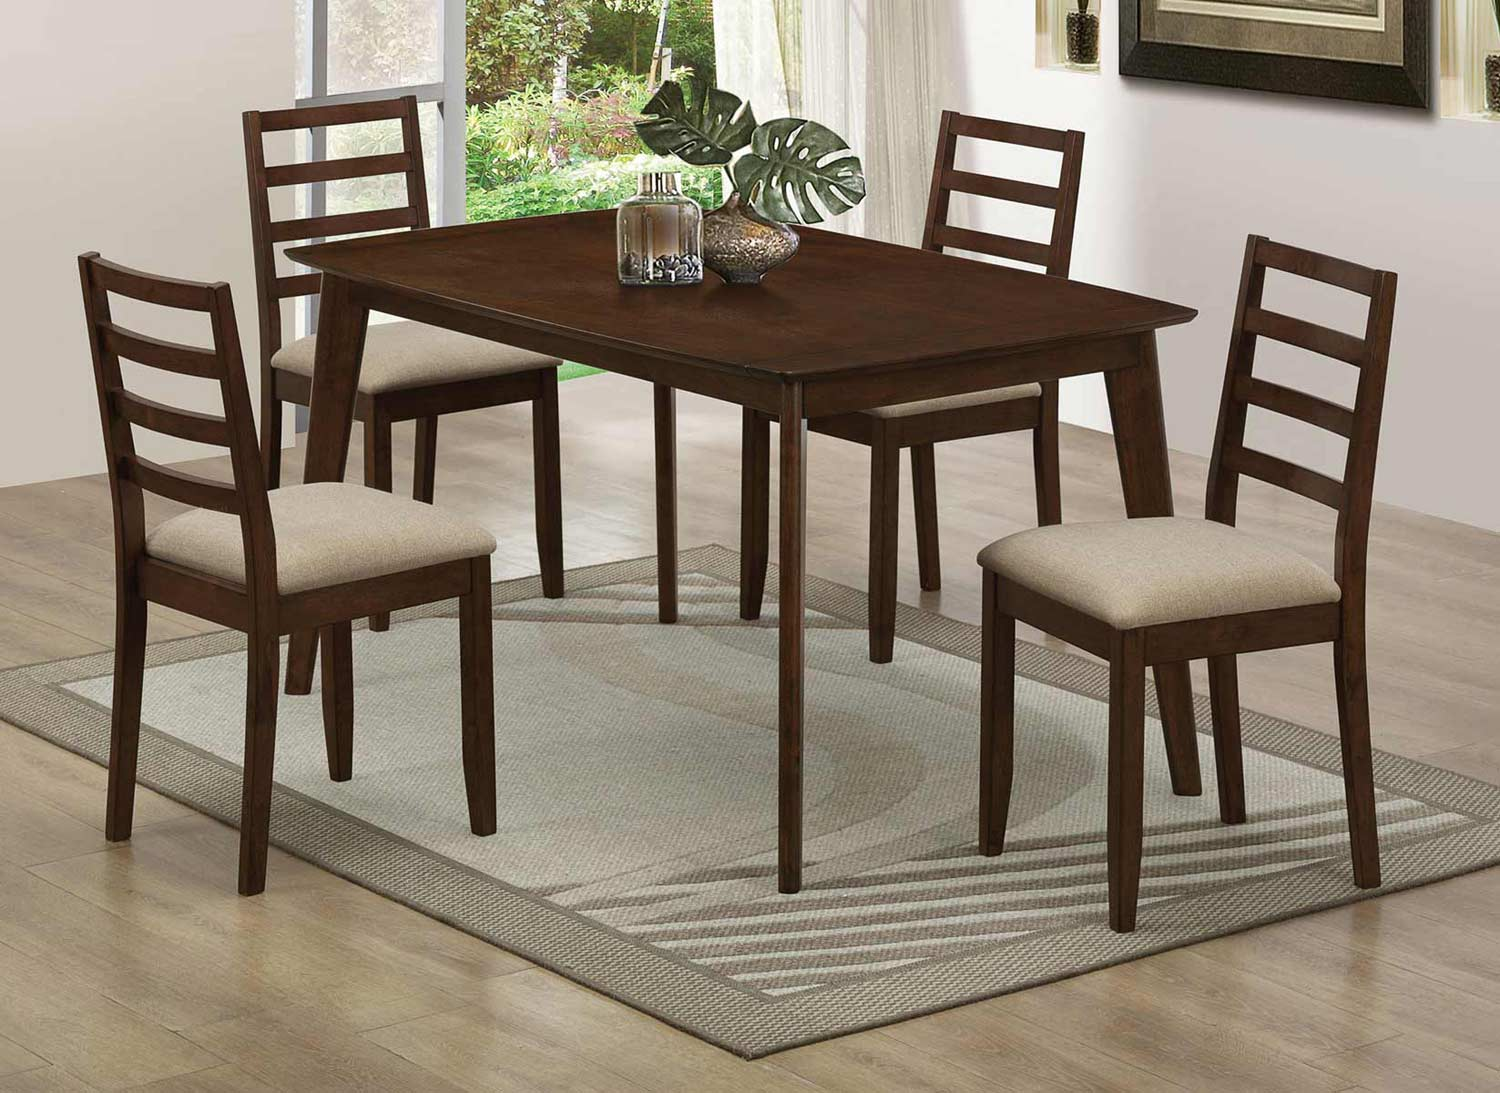 Coaster Mulligan Dining Collection - Medium Brown